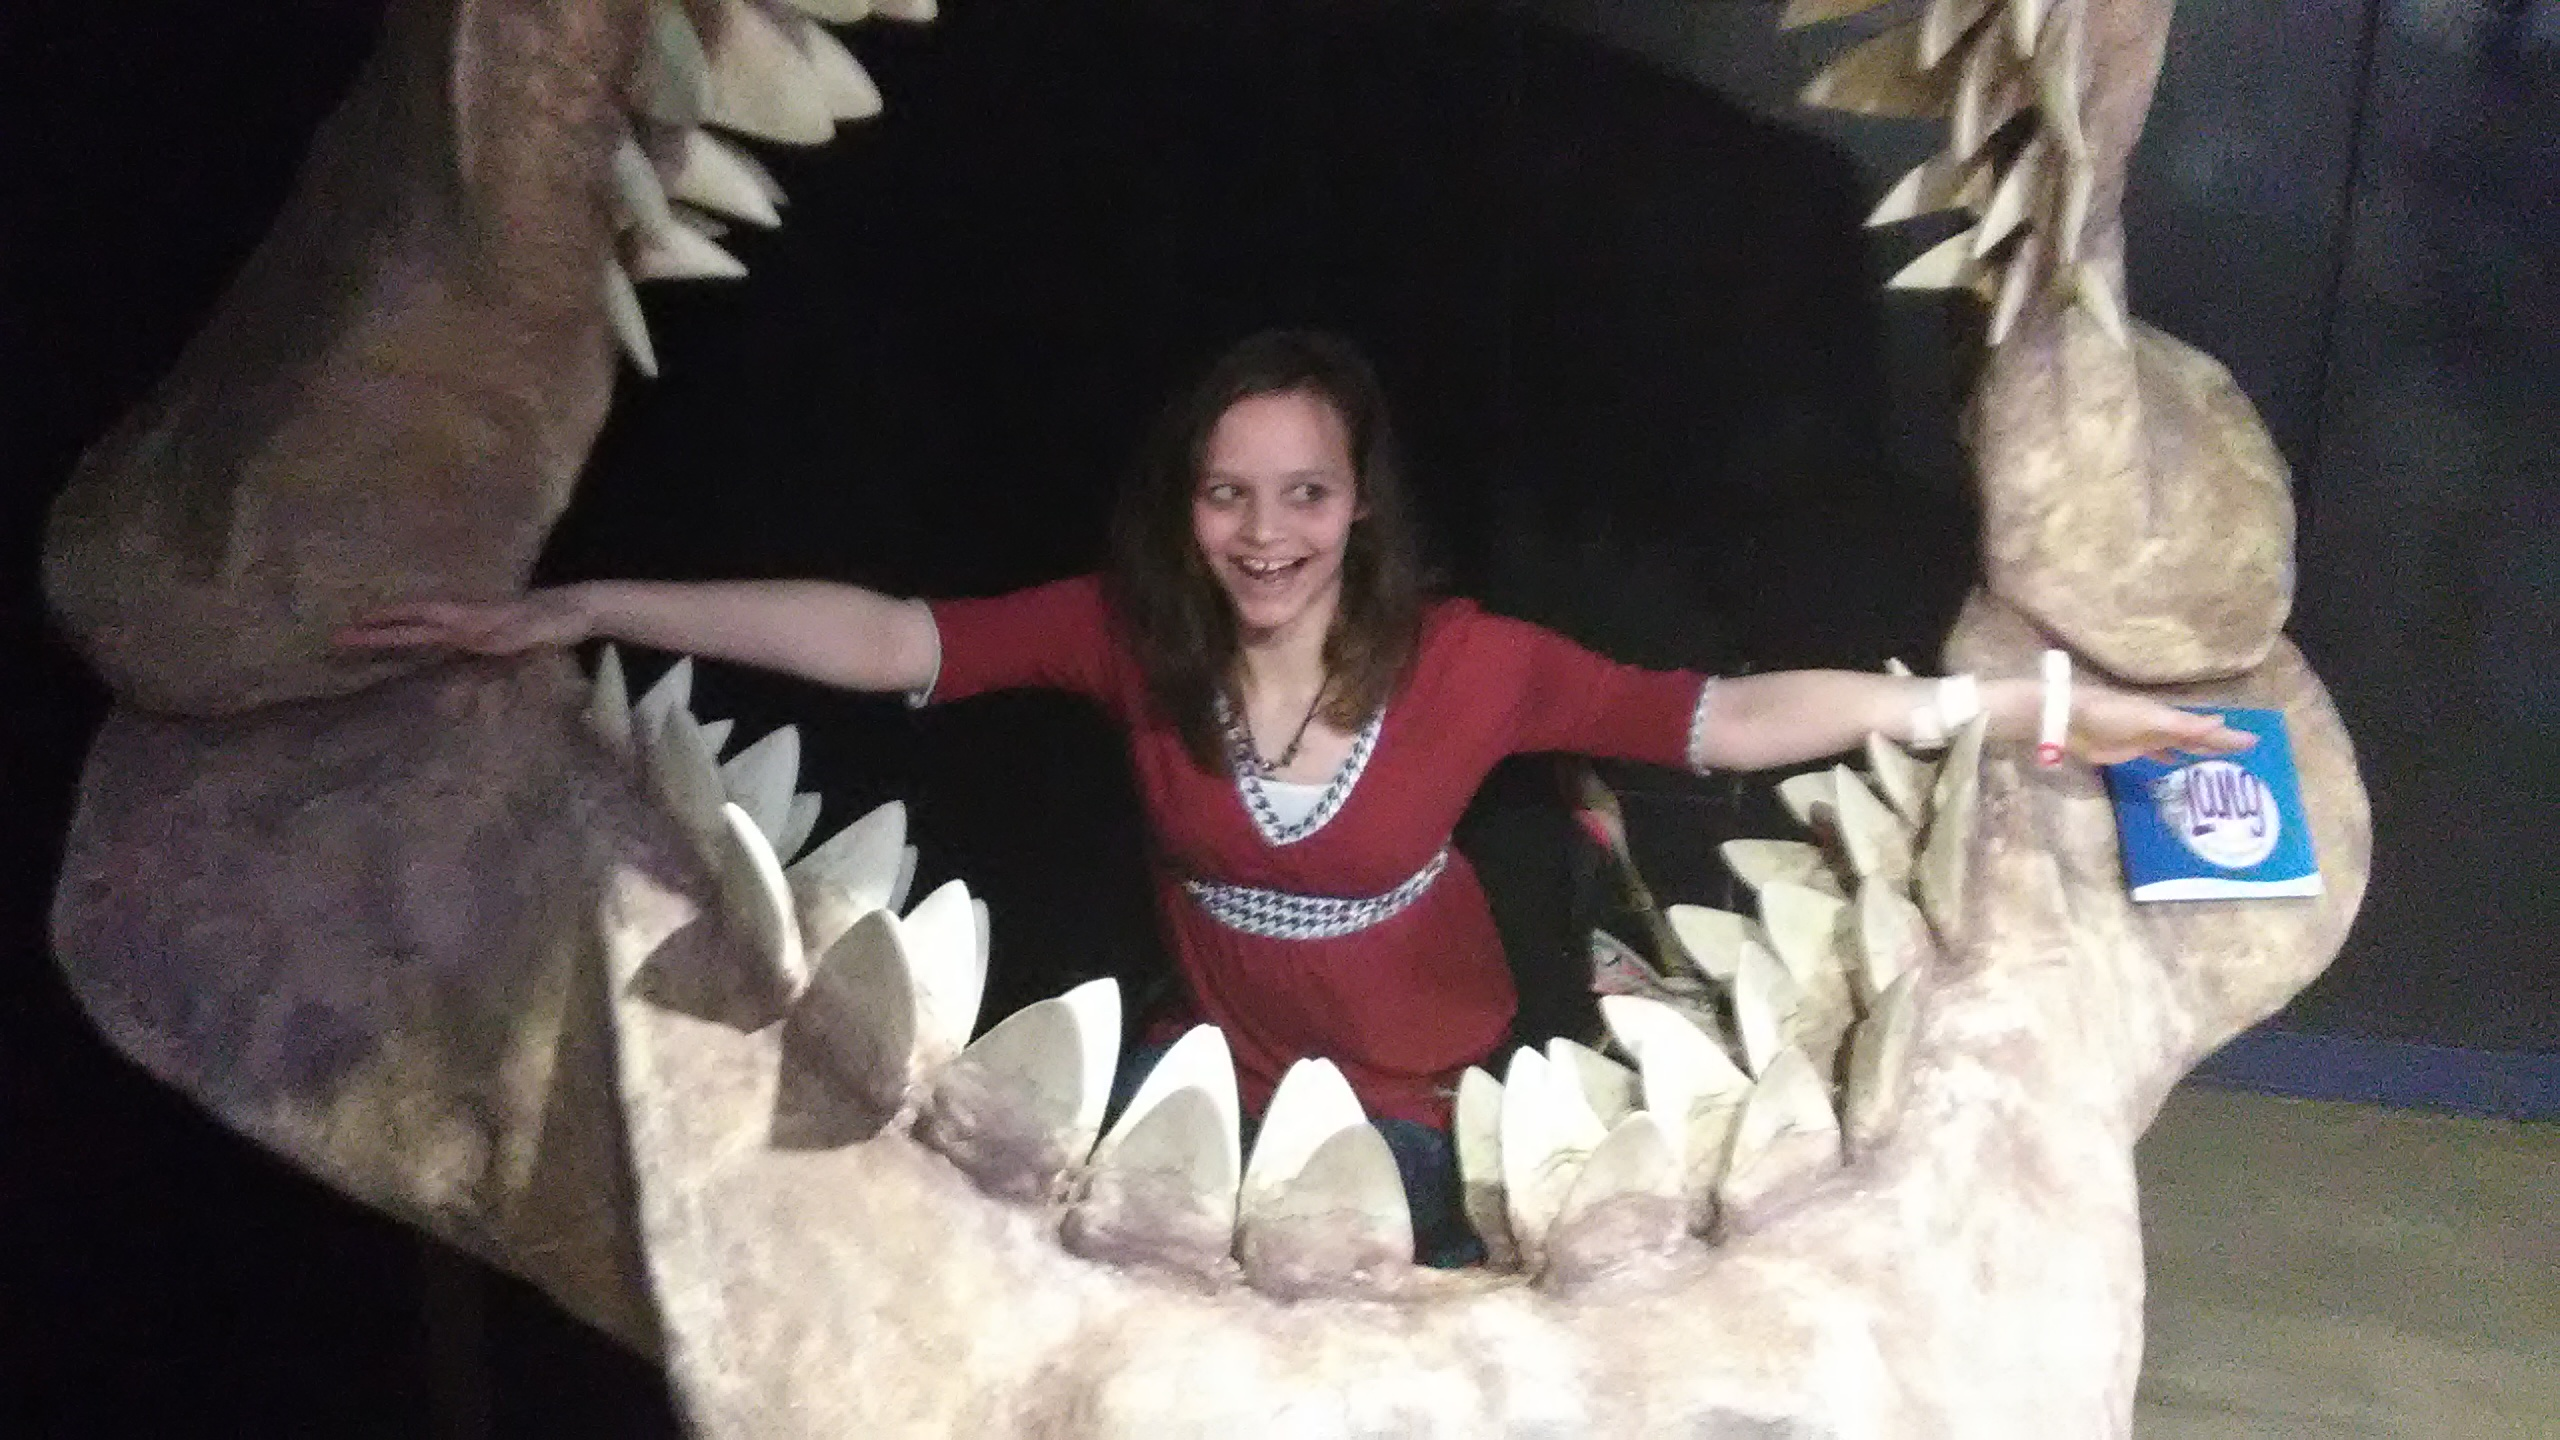 Chloe poses in the mouth of a dinosaur fossil, or replica.